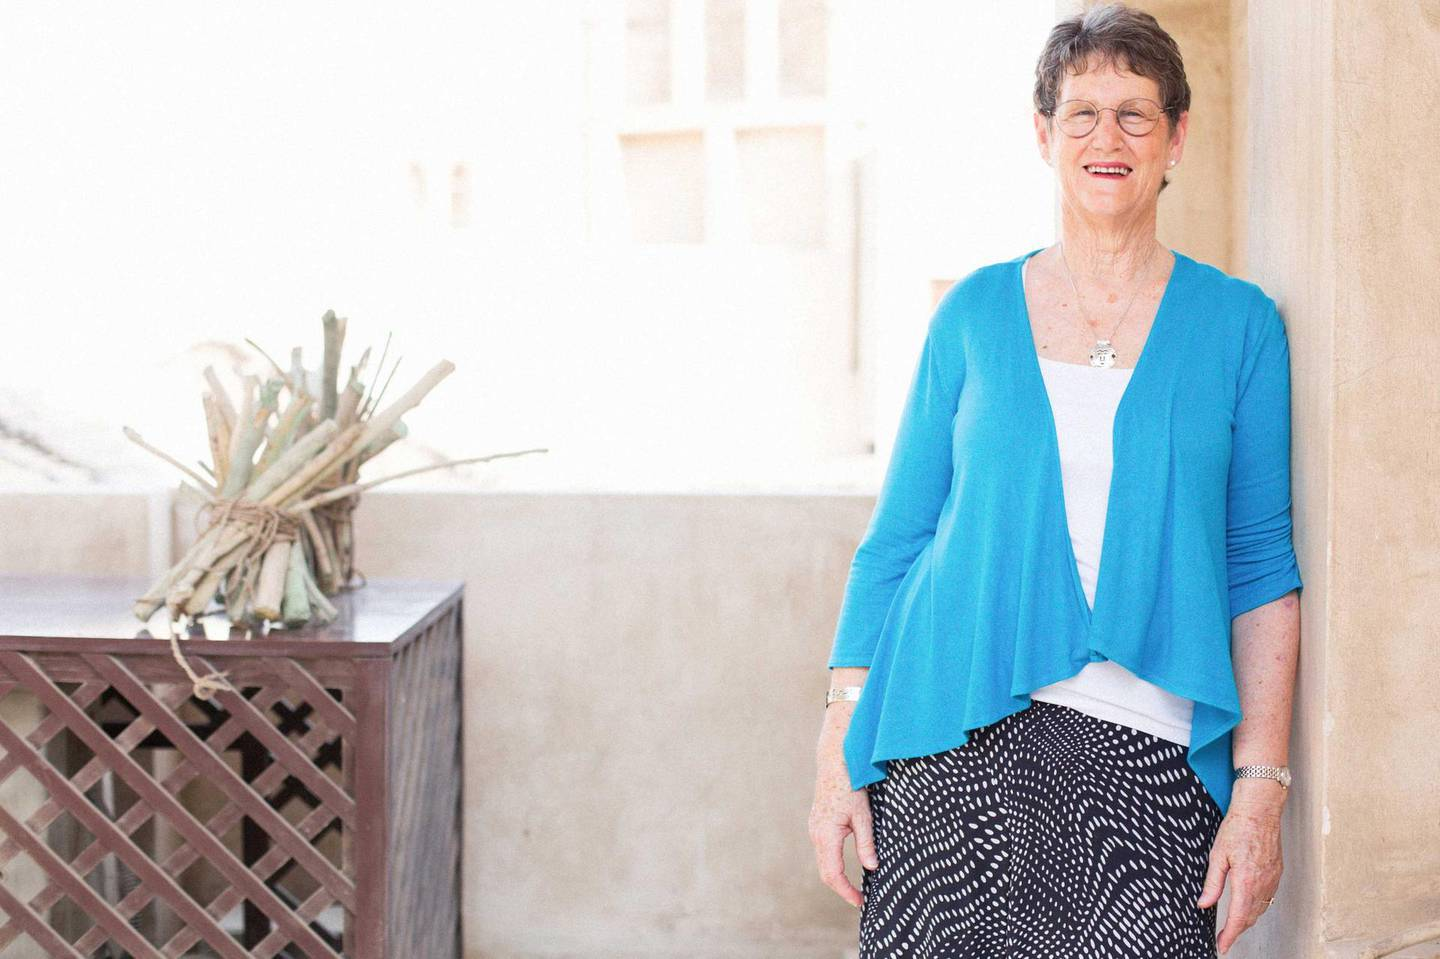 Helen Williams, founder of Mindful Me in Dubai. Courtesy of Mindful Me